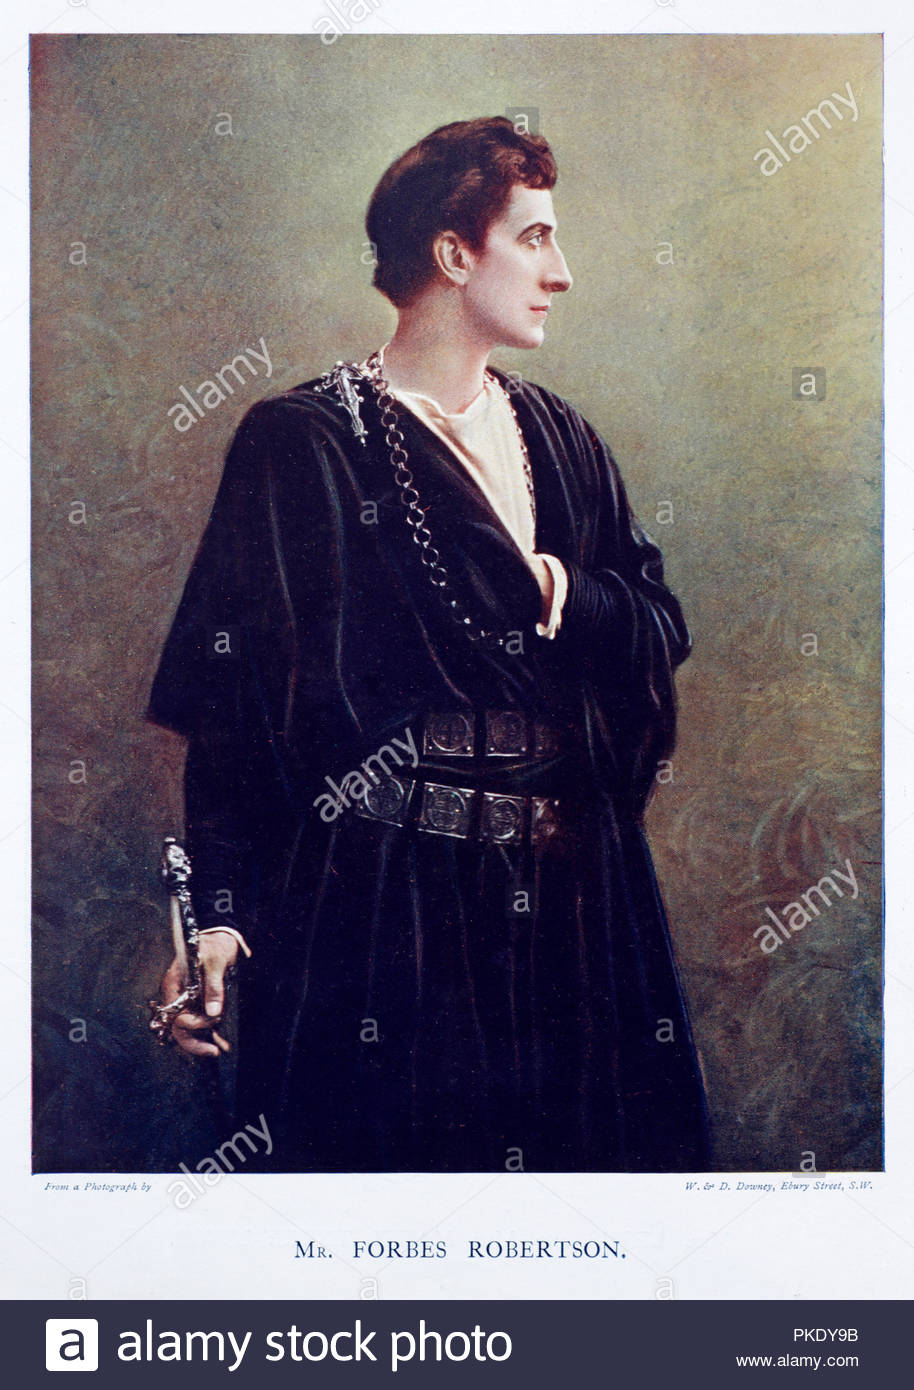 Forbes Robertson portrait, 1853 – 1937, was an English actor and theatre manager. He was considered the finest Hamlet of the Victorian era and one of the finest actors of his time. Colour illustration from 1899. - Stock Image